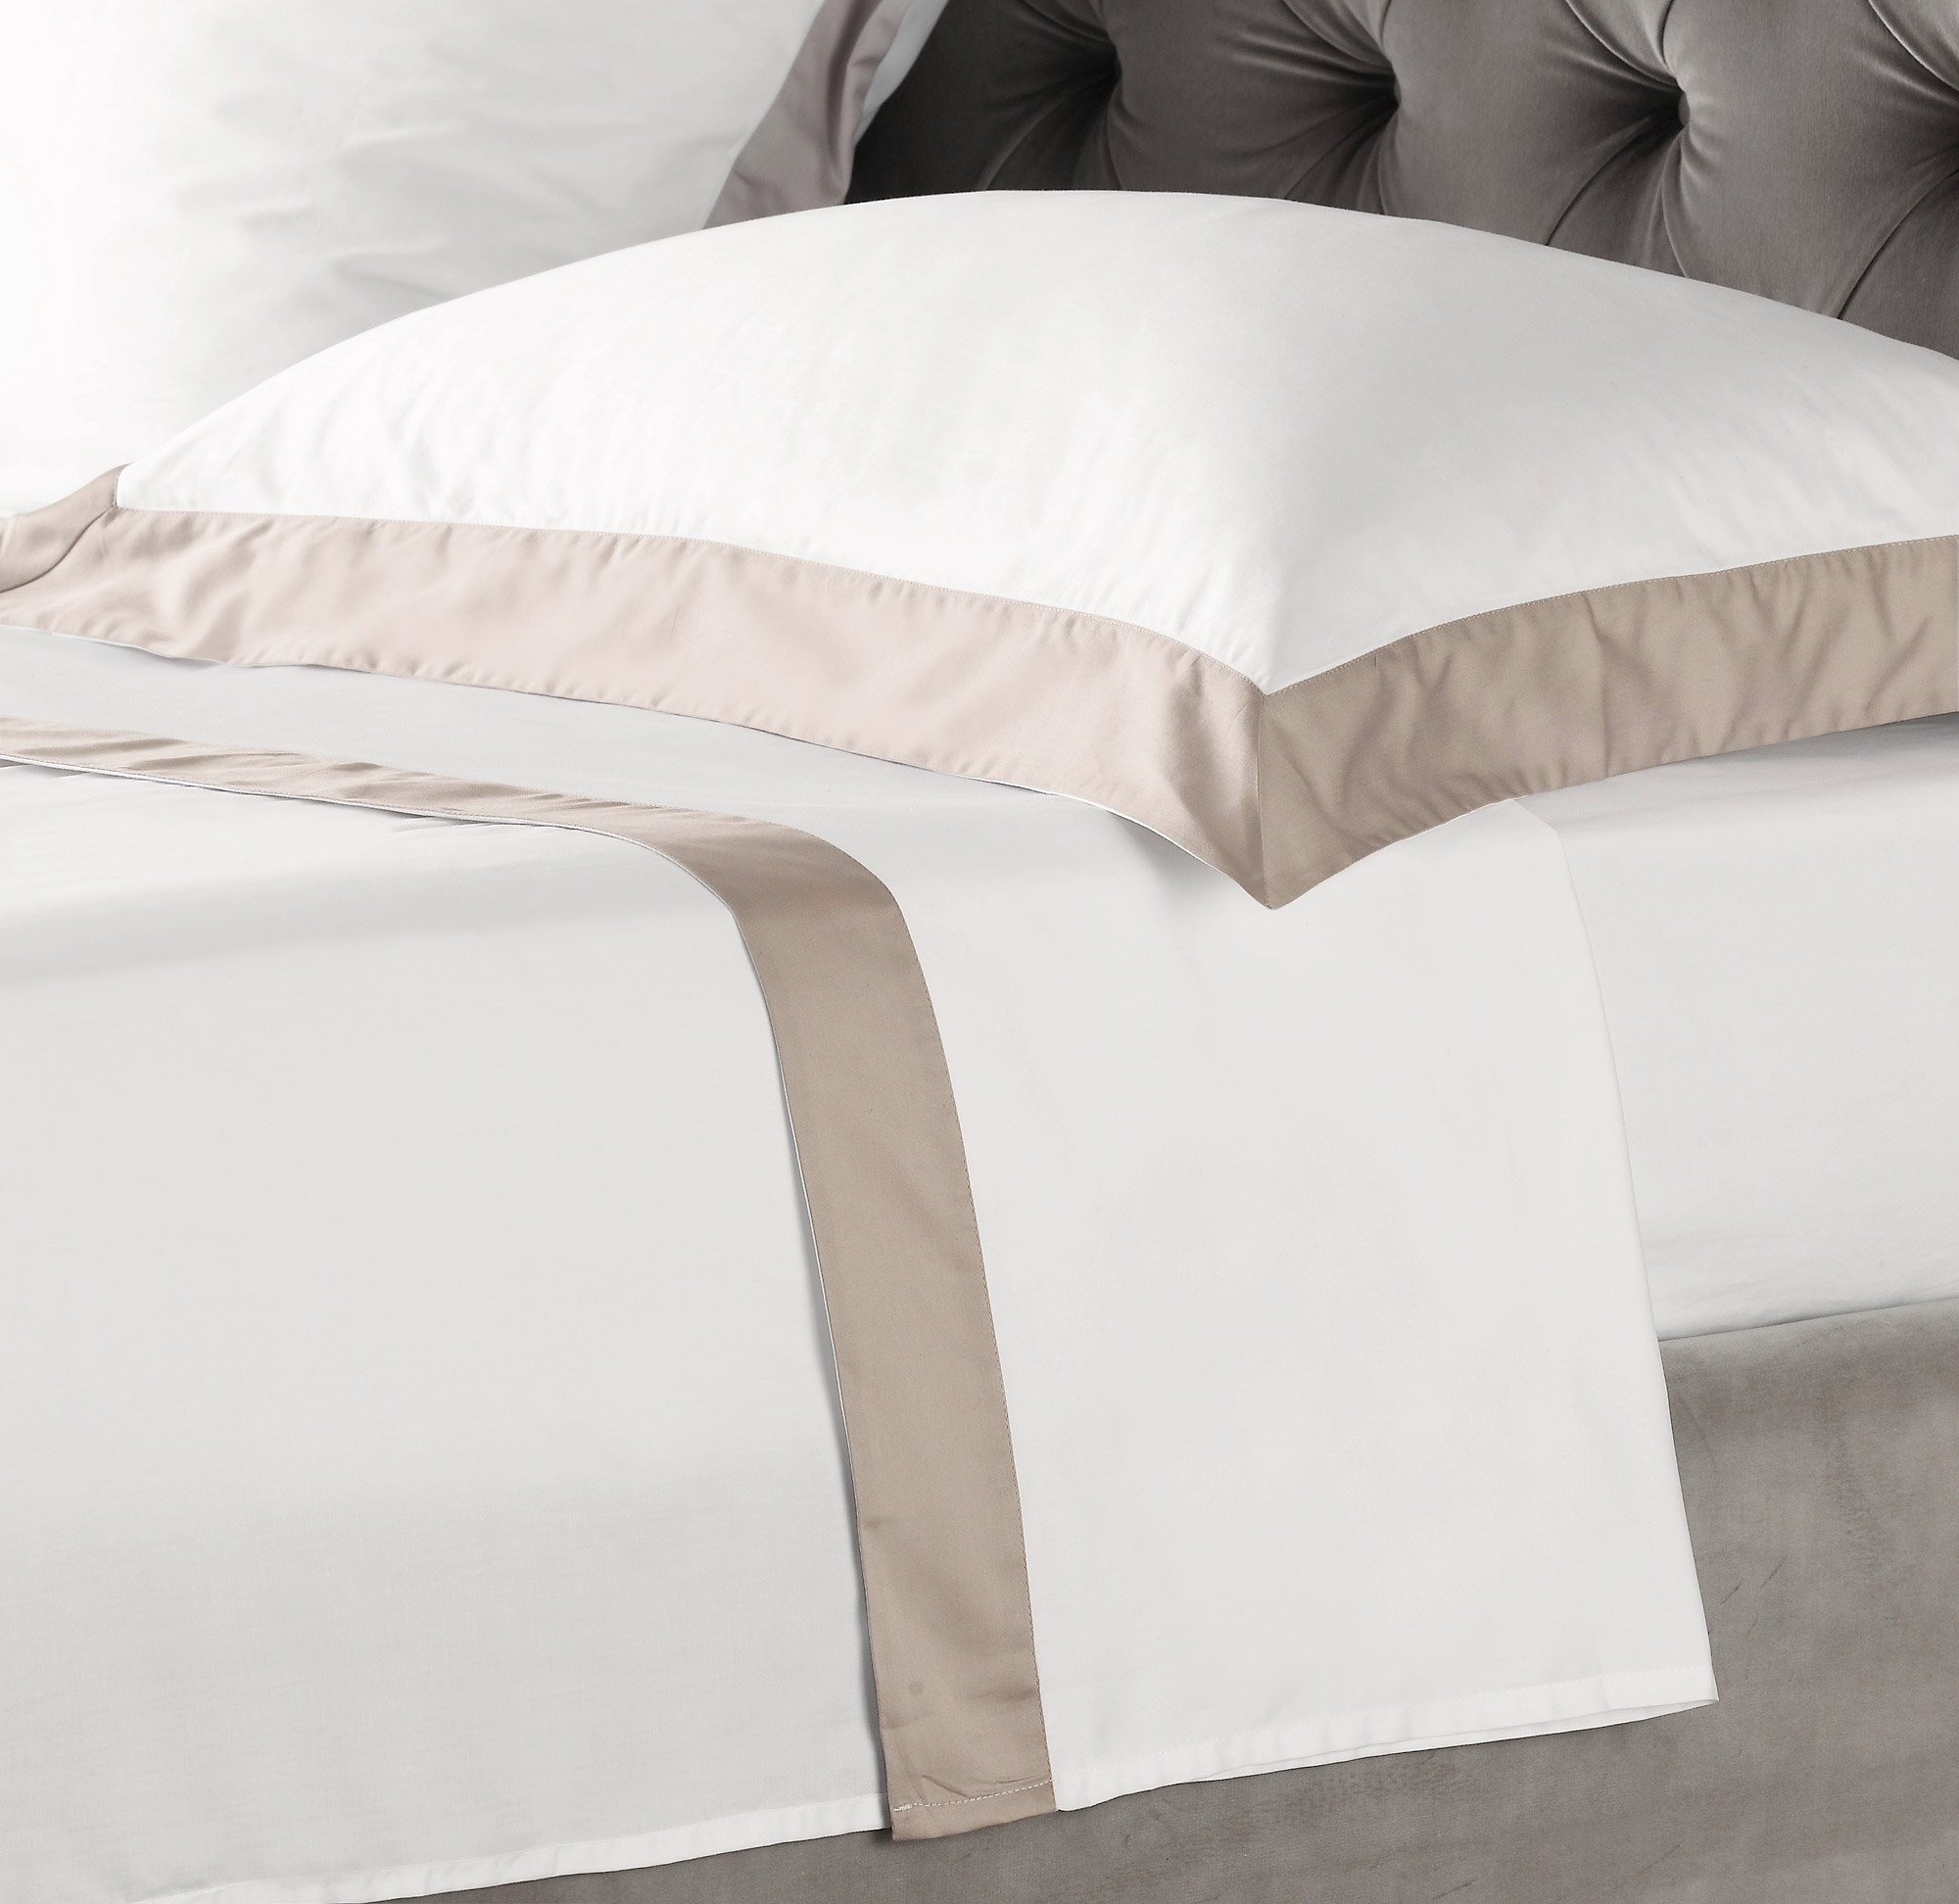 genoa flat sheet king size rose at the perfect present company. Black Bedroom Furniture Sets. Home Design Ideas